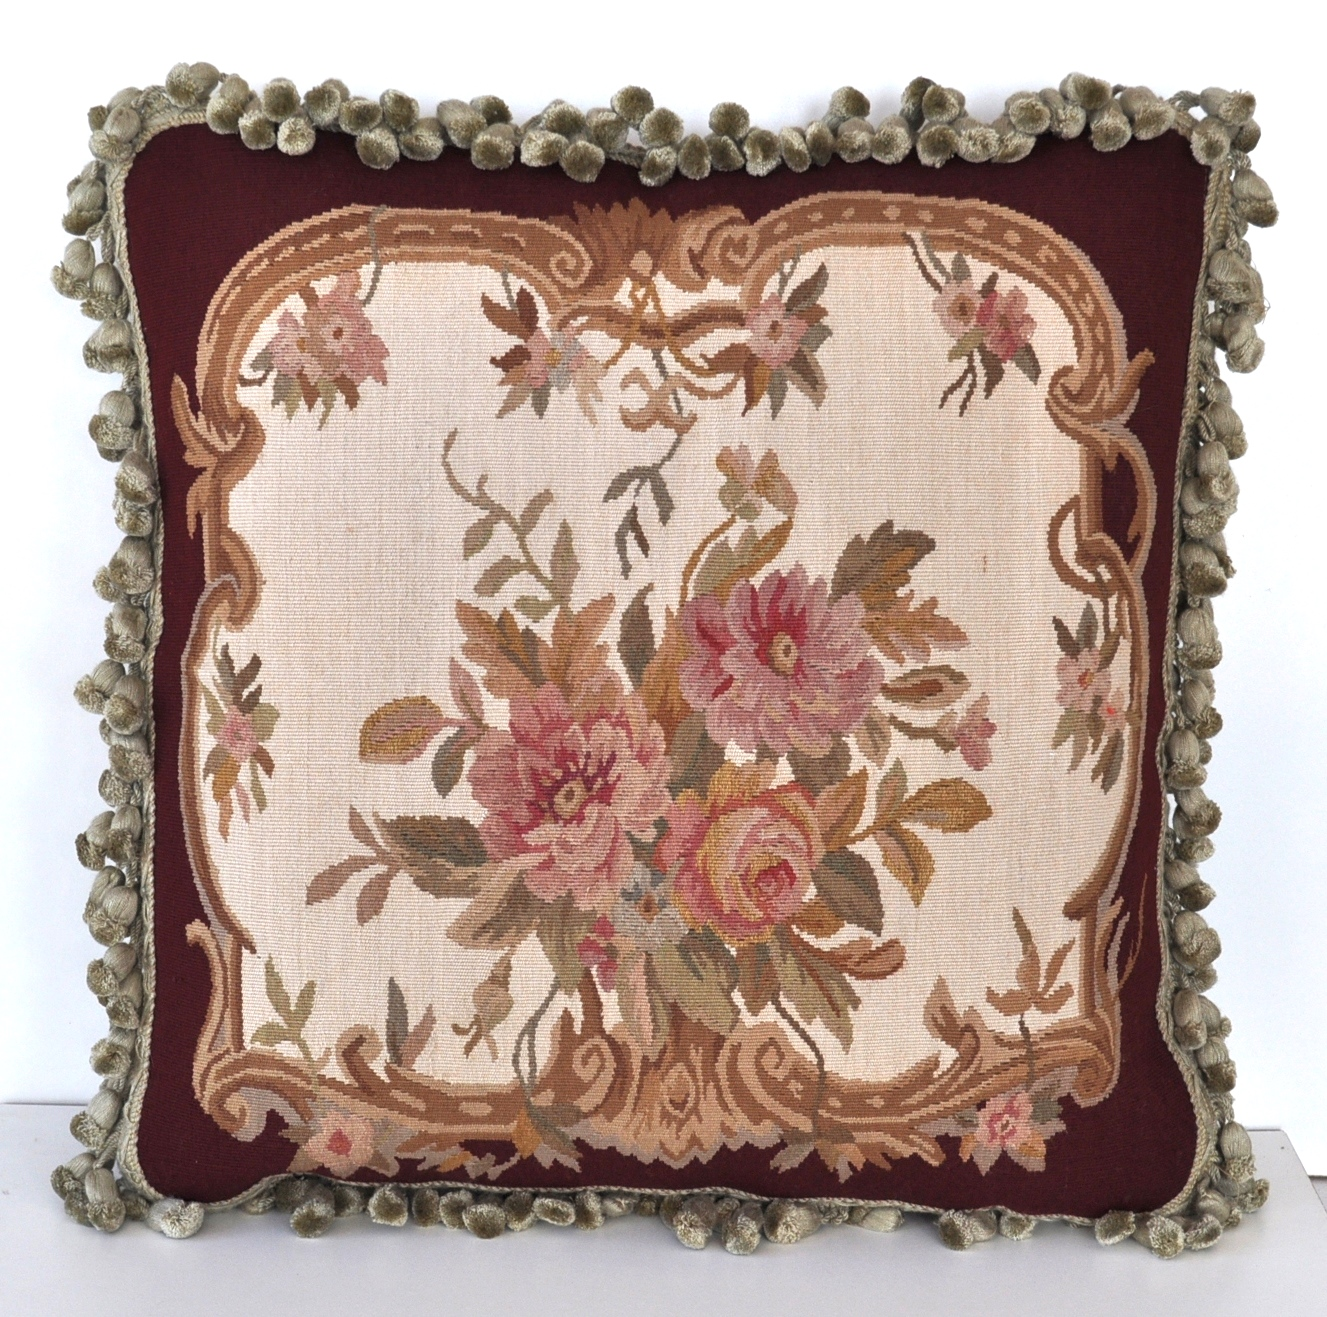 18 x 18 Handmade French Gobelins Tapestry Weave Wool Aubusson Cushion Cover Pillow Case 12980779